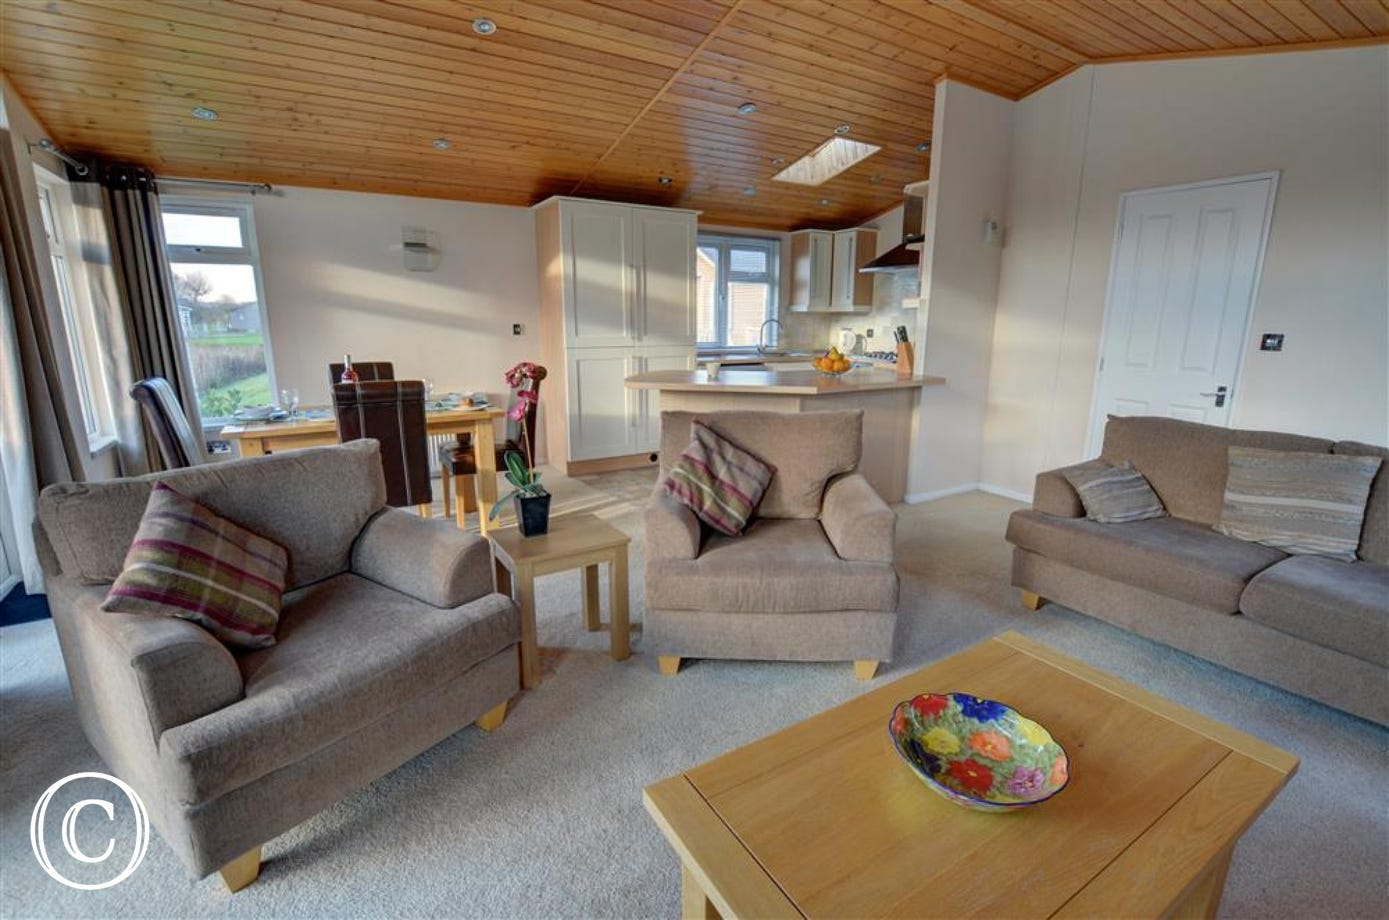 Enjoy this open plan and easy to use sitting area with dining area and kitchen.